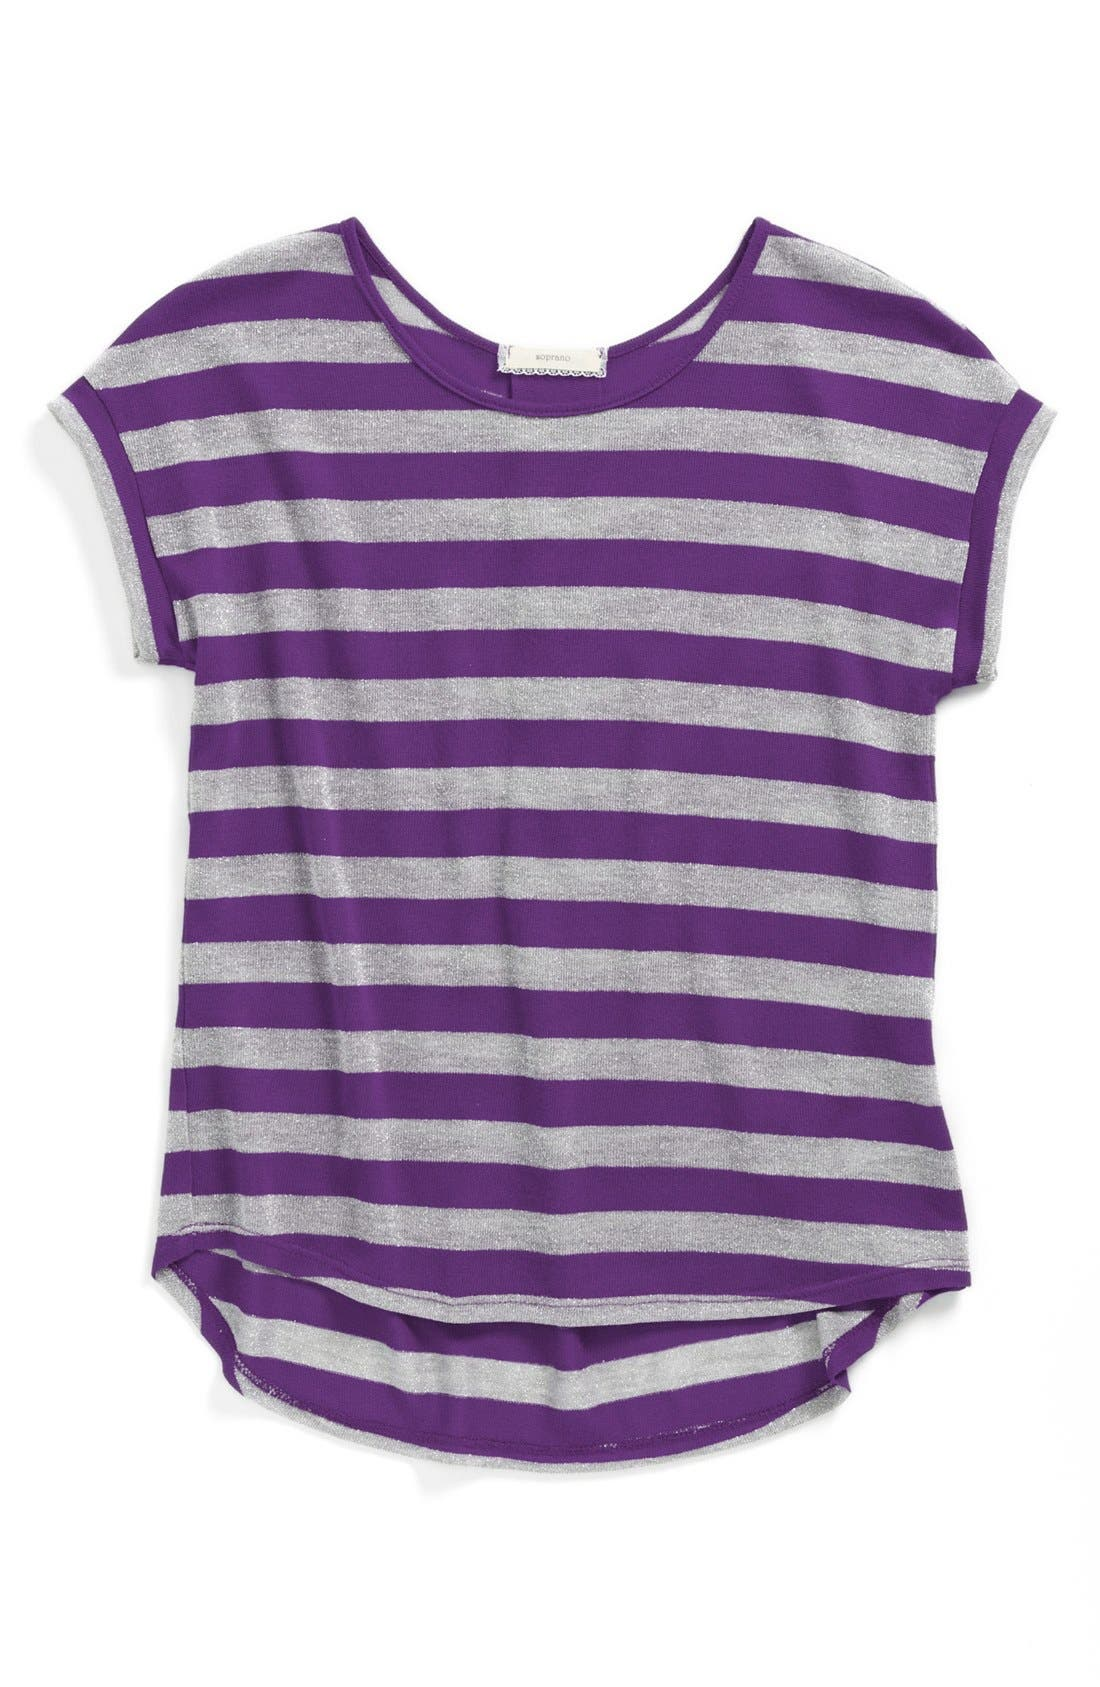 Alternate Image 1 Selected - Soprano Metallic Stripe Top (Big Girls)